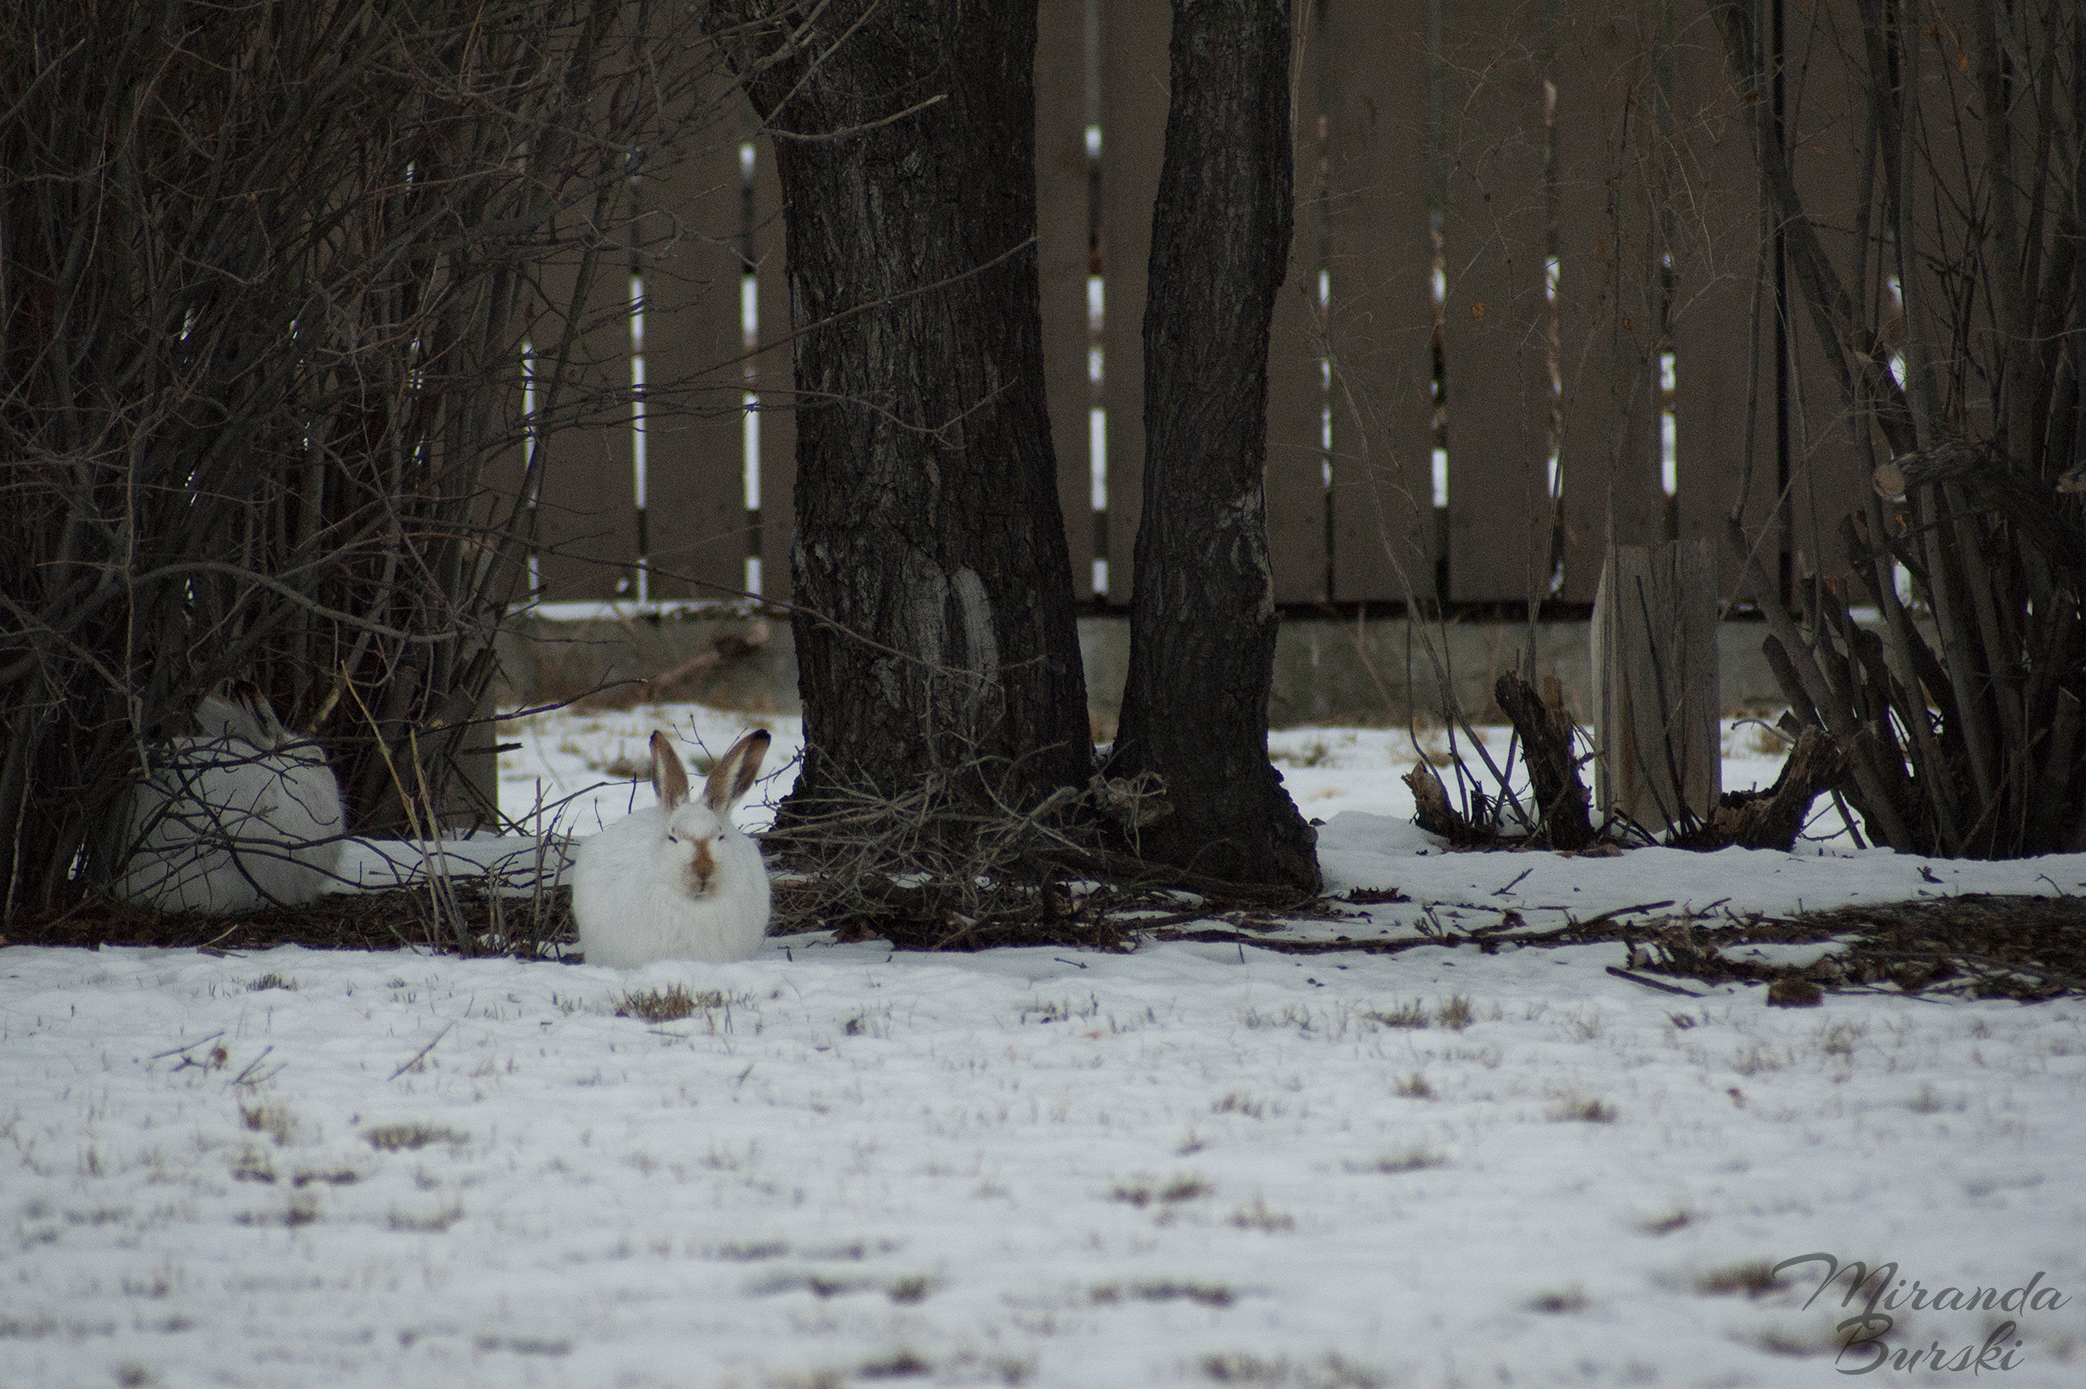 Two white and brown jack rabbits, sleeping on snow near trees and a fence.